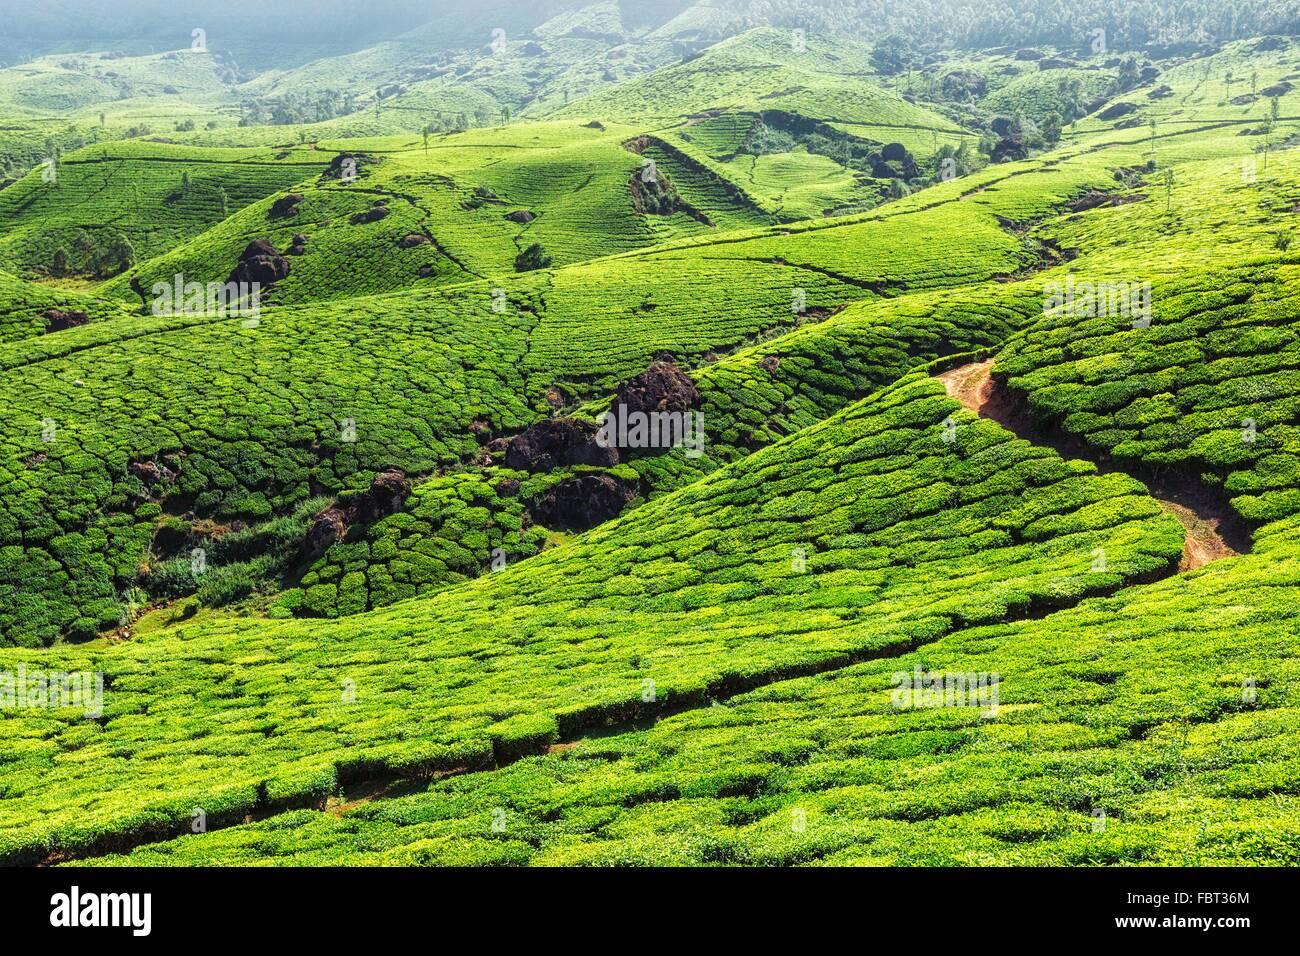 Tea plantations in mountains - Stock Image